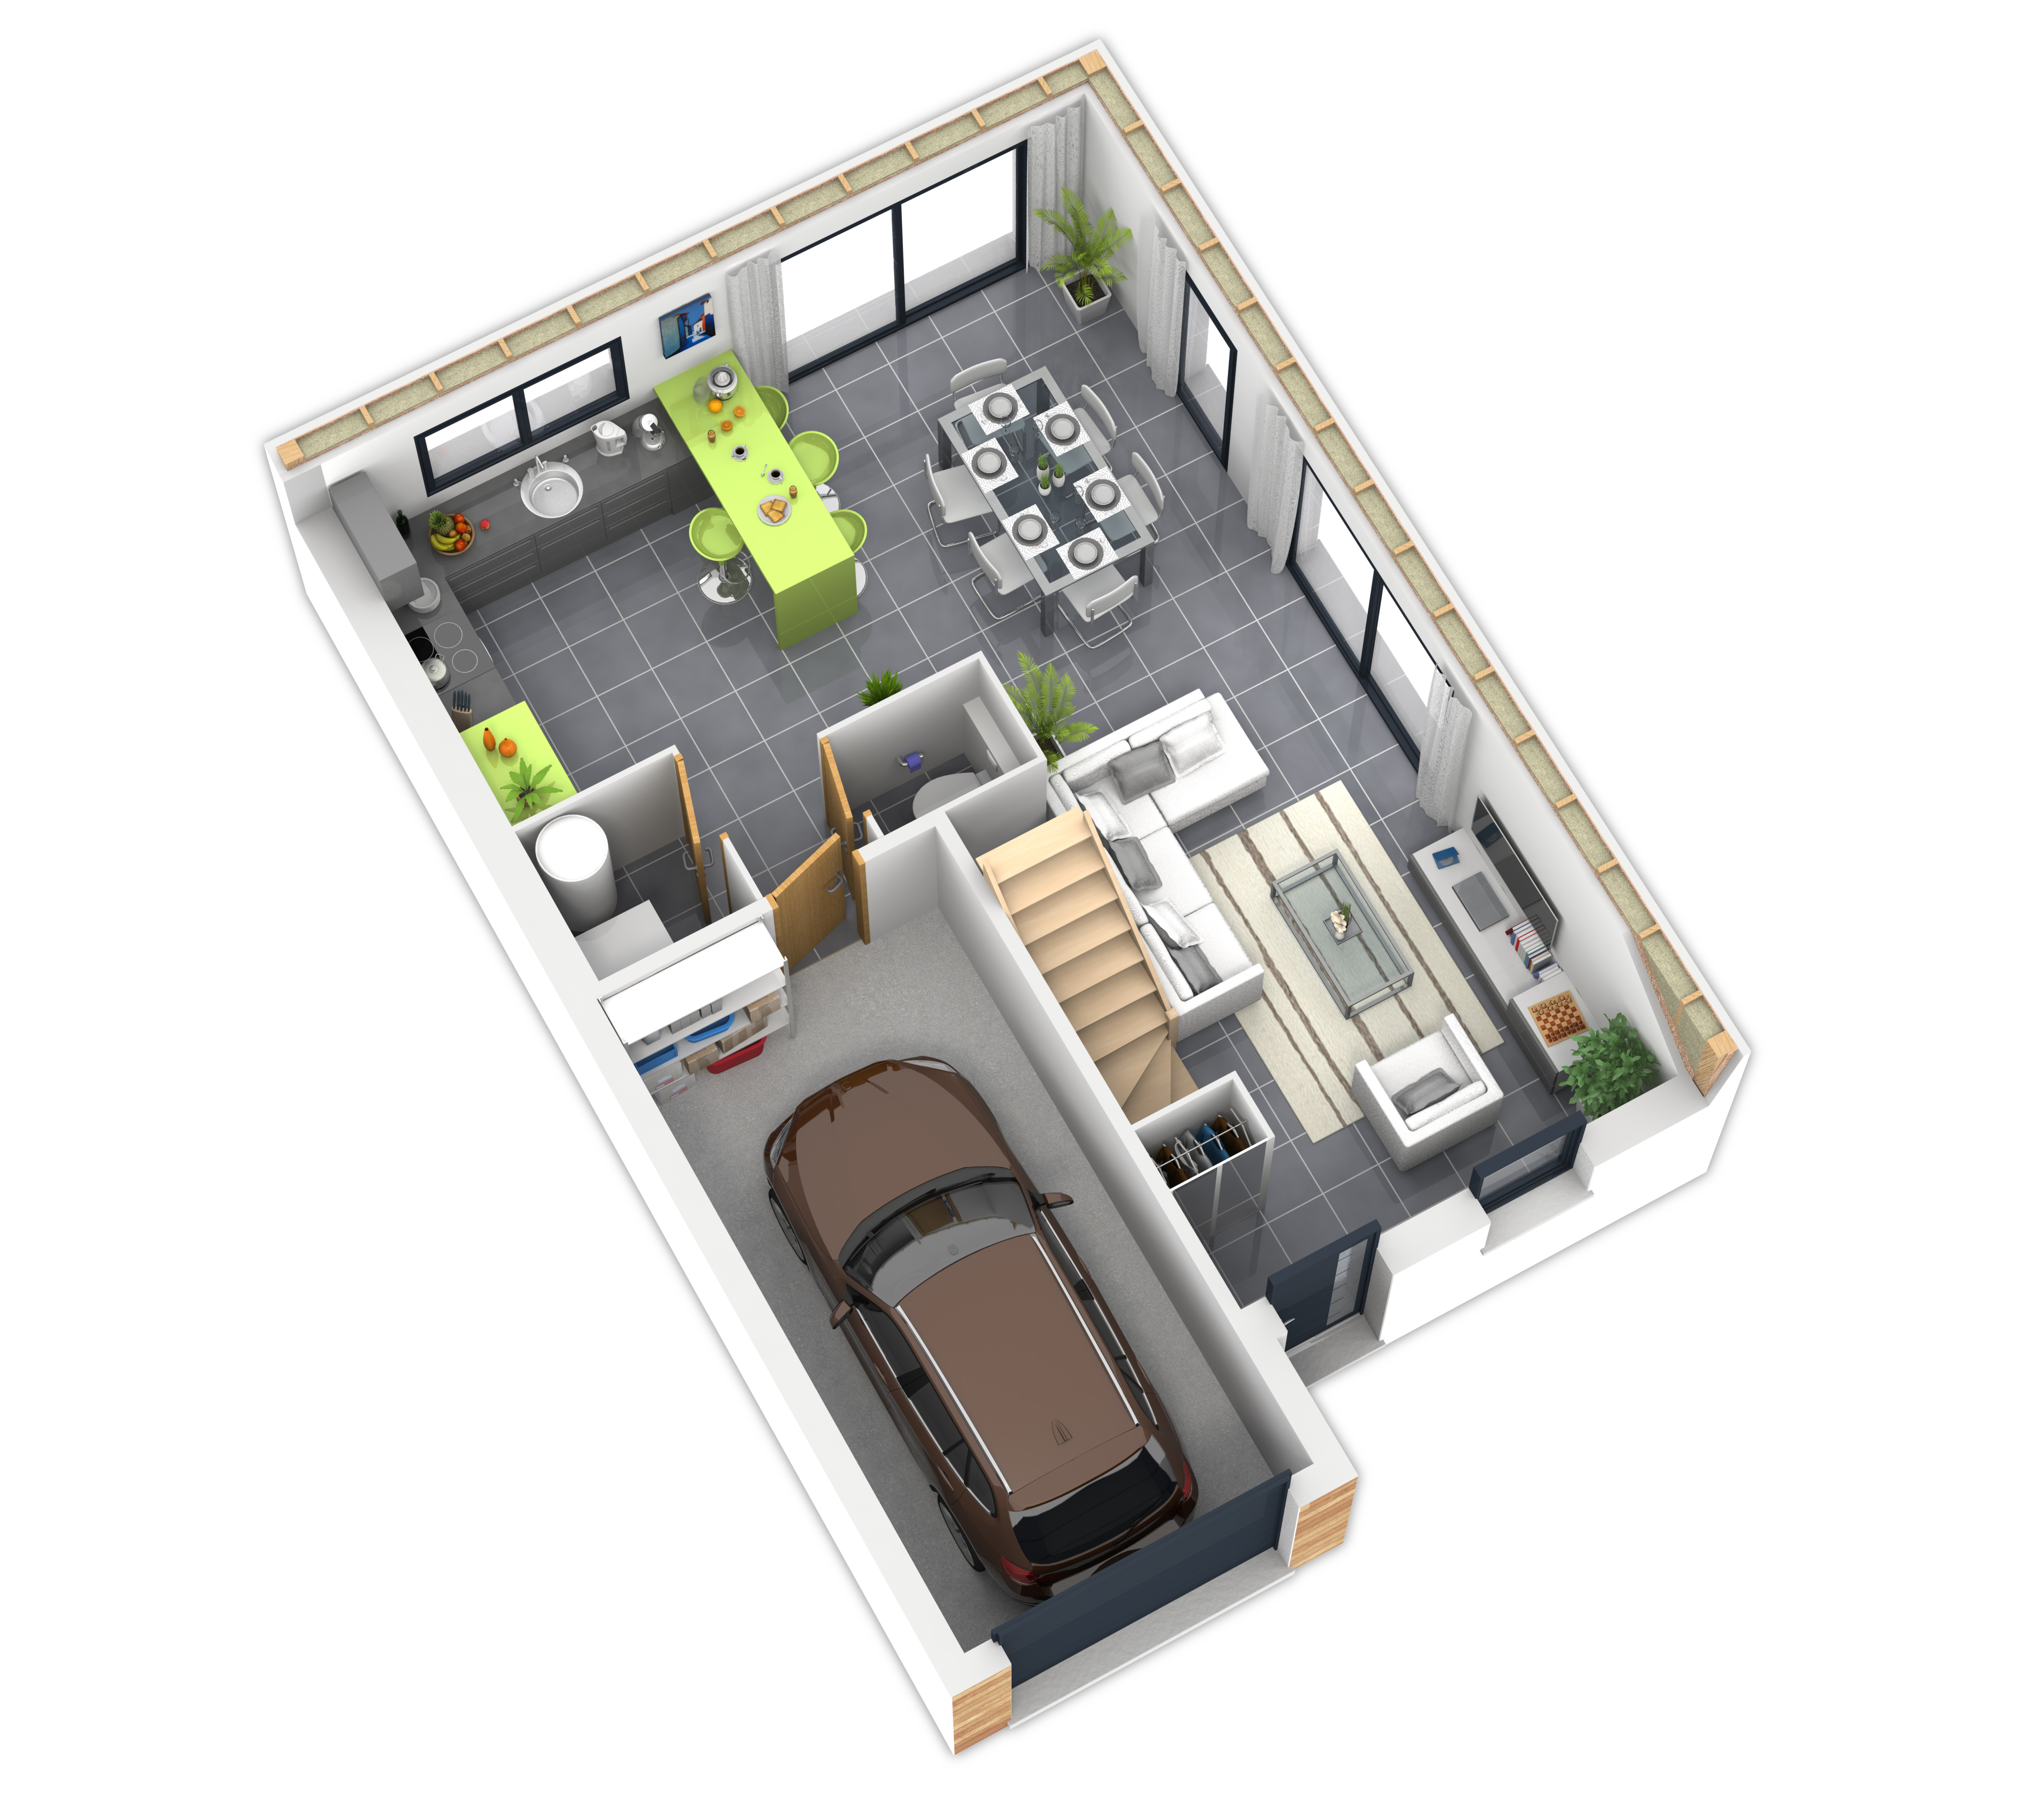 Plan maison bois mod le natirane terre de soleil natilia for Plan amenagement interieur maison